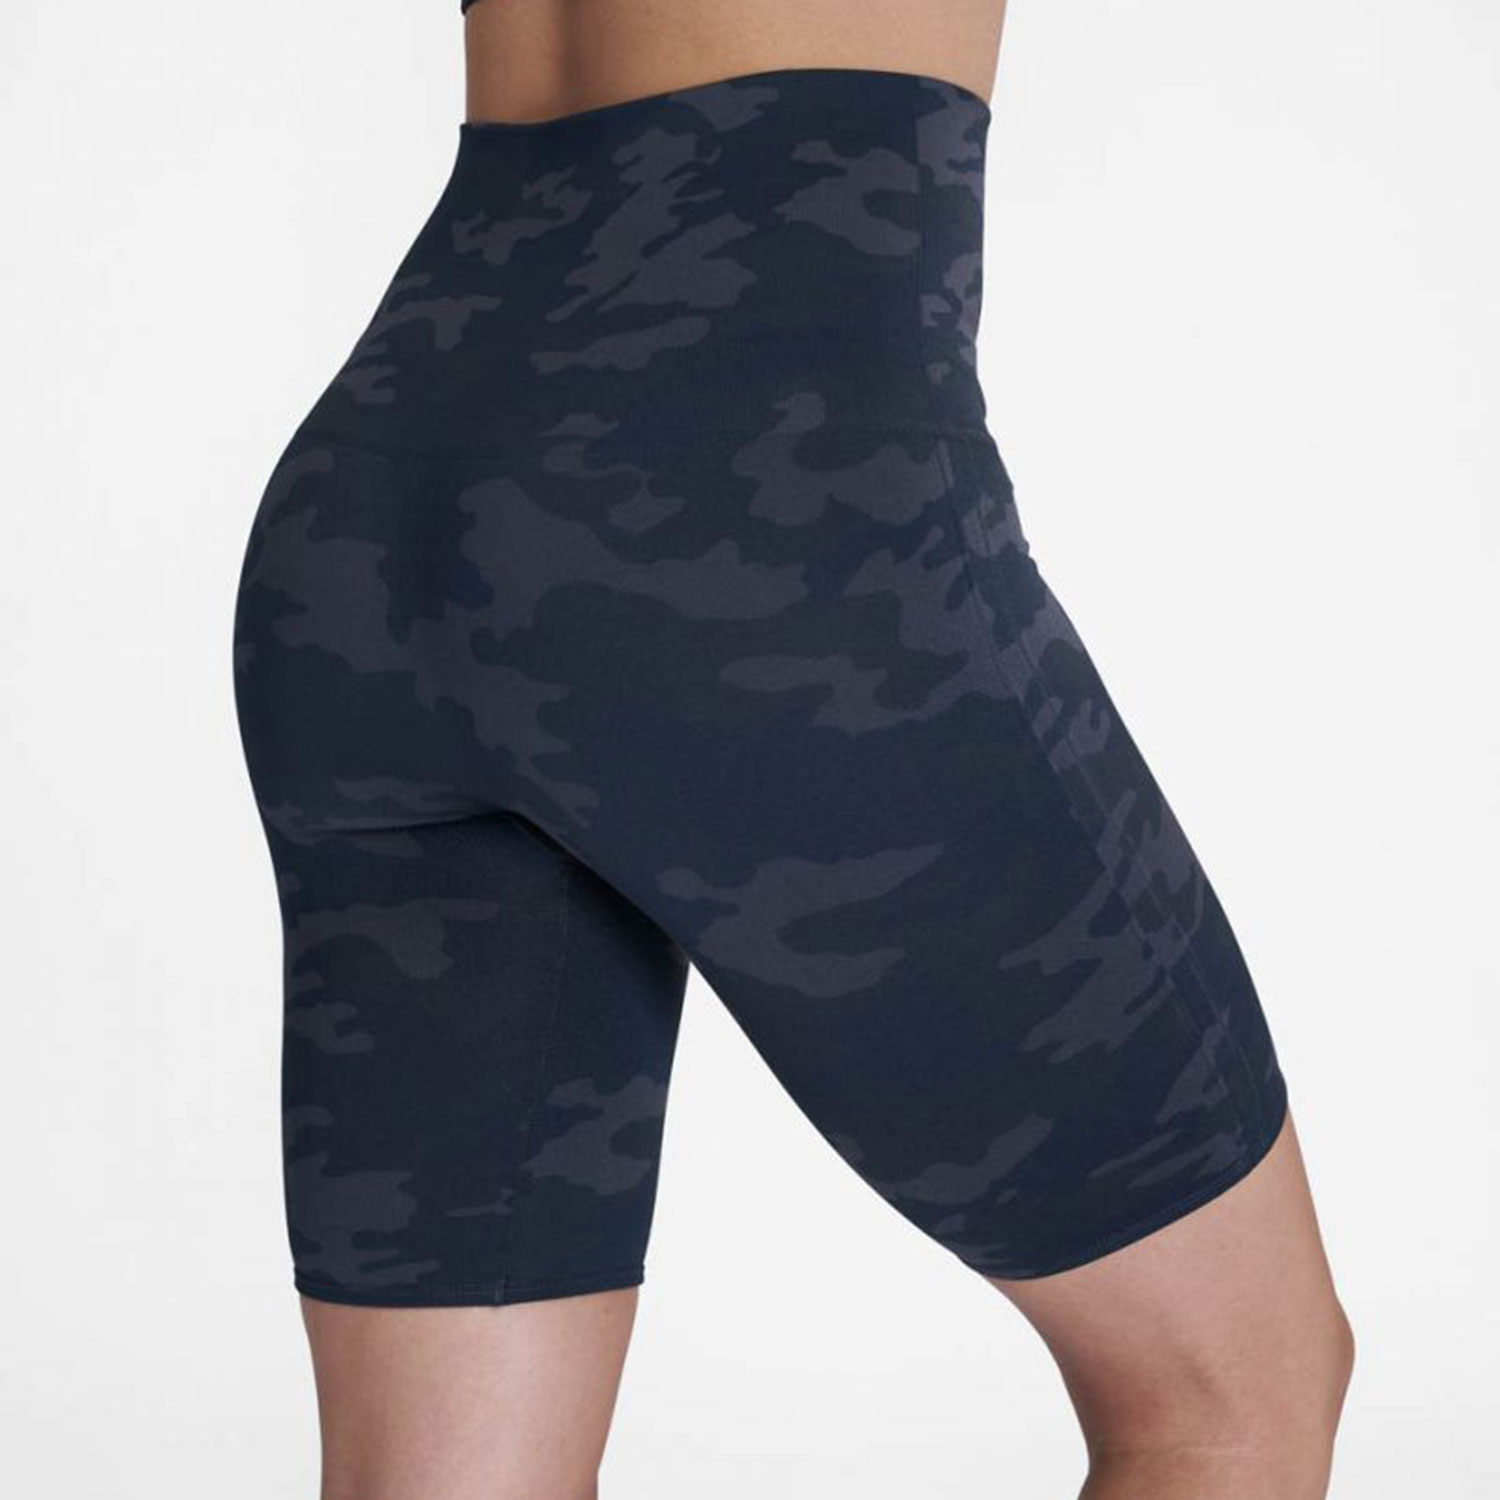 Spanx Active Workout Stretchy Shorts